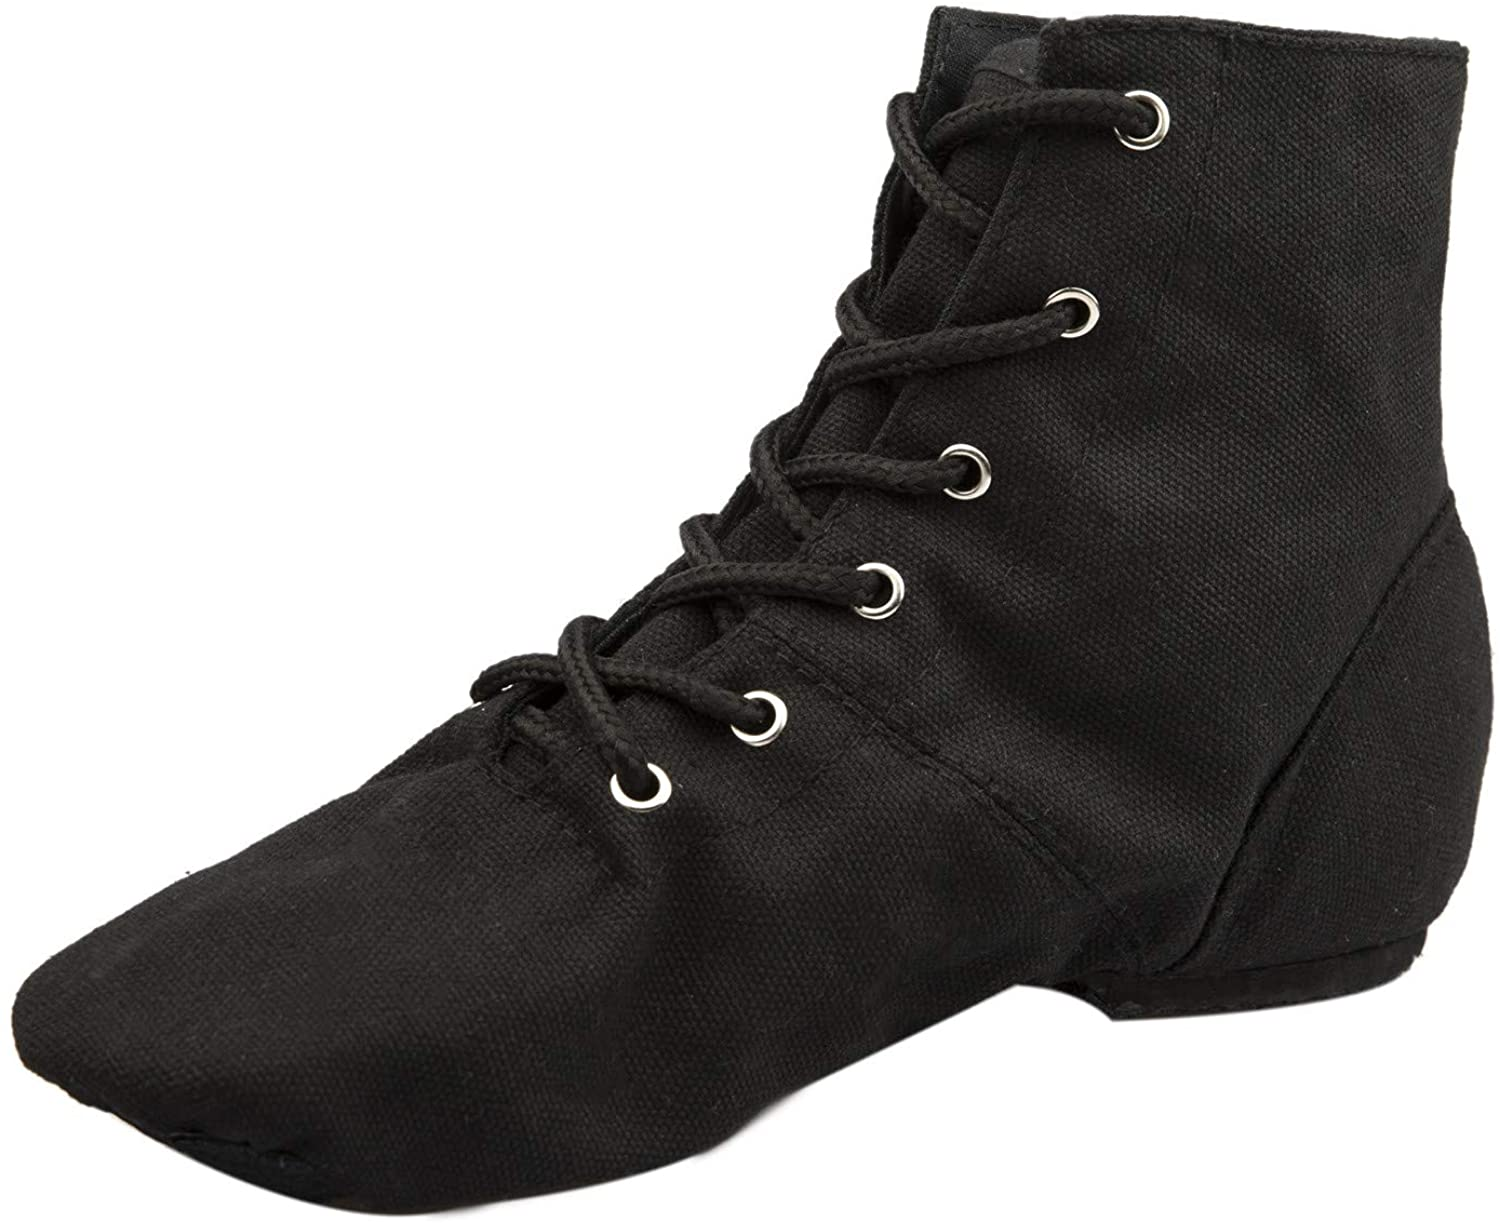 NLeahershoe Lace-up Canvas Dance Shoes Flat Jazz Boots for Practice, Suitable for Both Men and Women